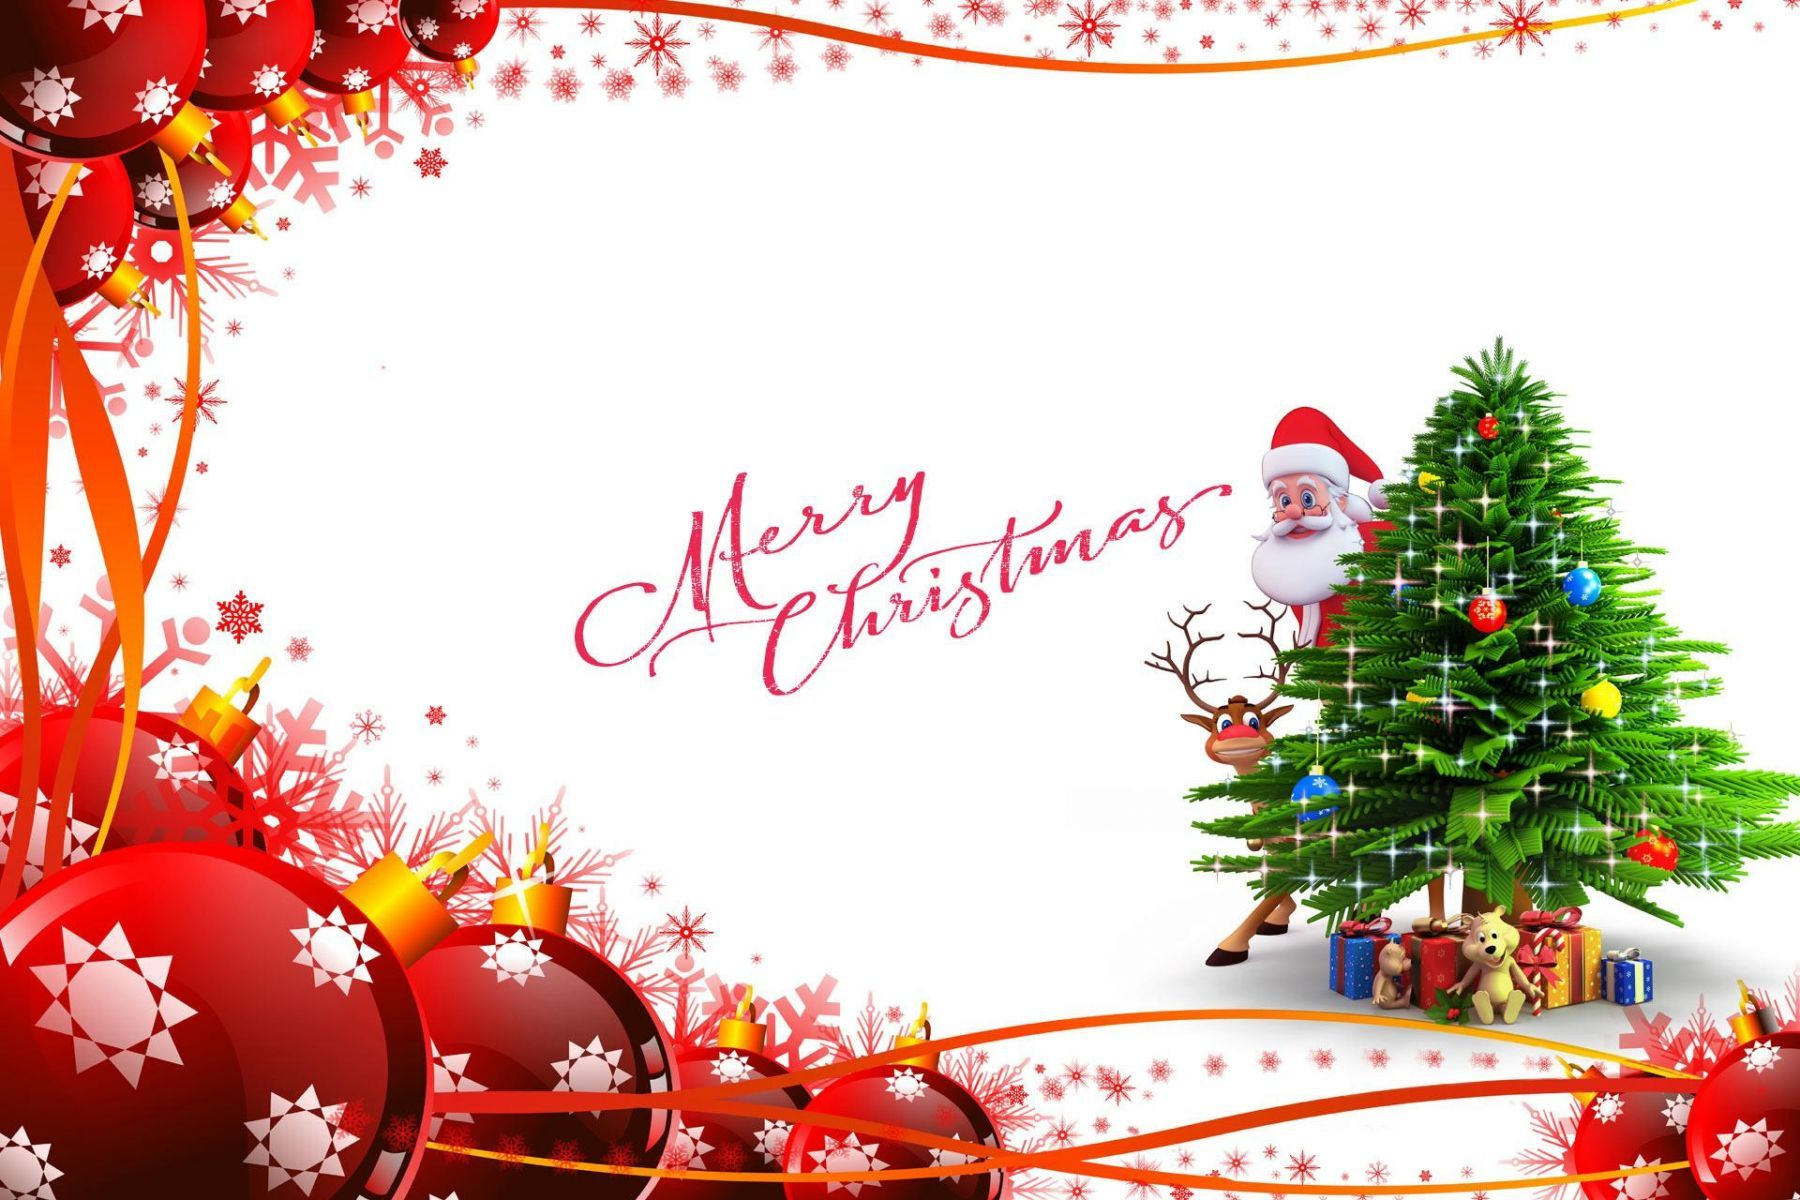 Christmas Quotes Wallpapers Top Free Christmas Quotes